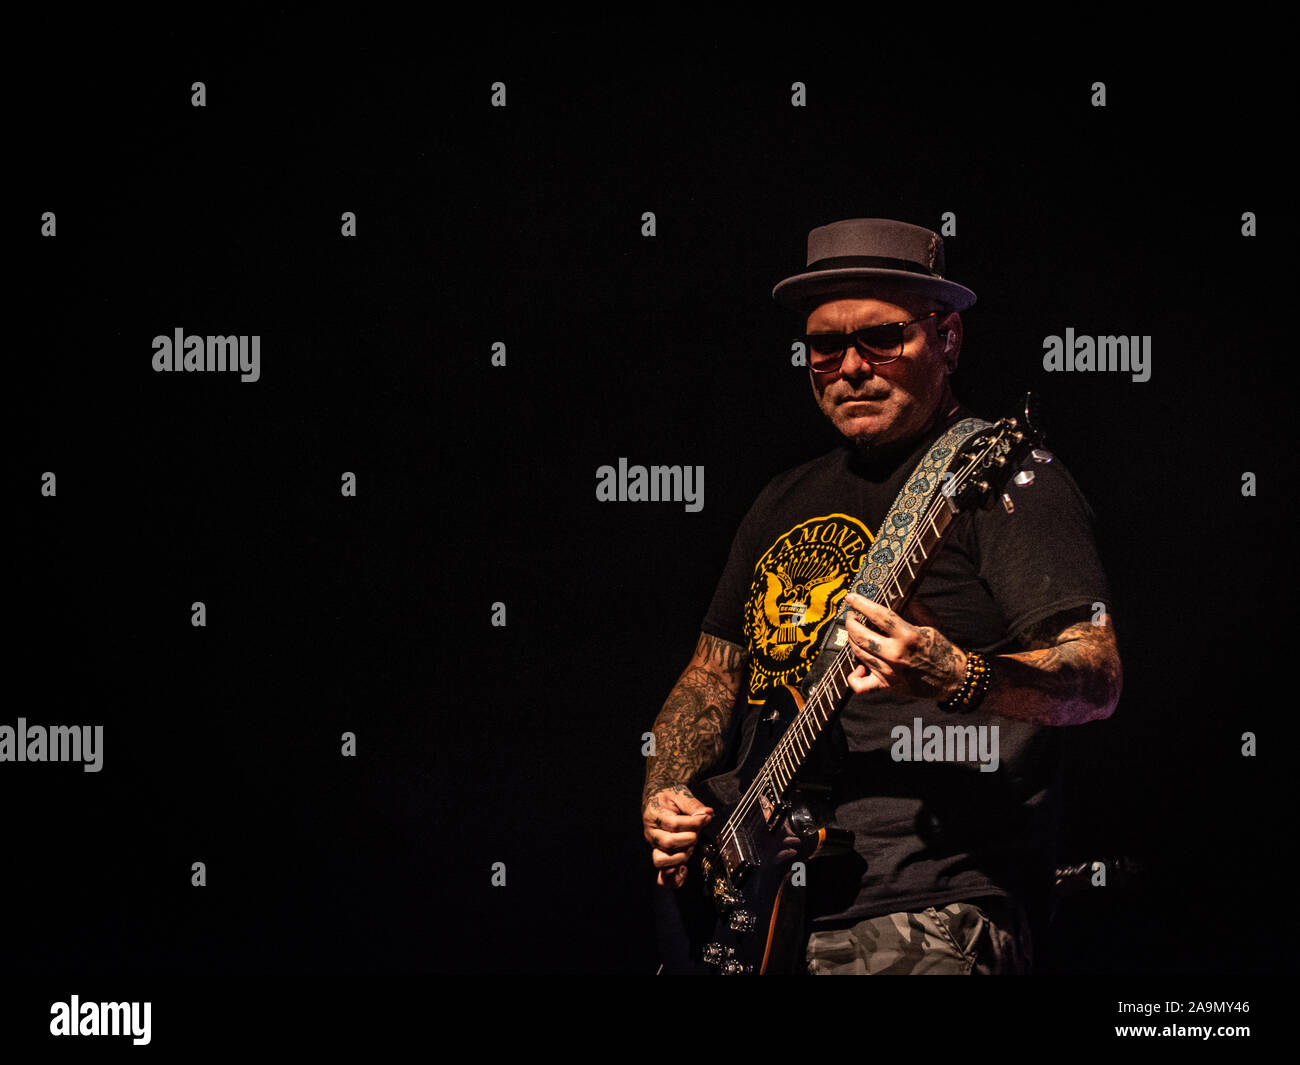 Milan, Italy. 14 November 2019. American Christian nu metal band P.O.D. performs at Live Music Club. Brambilla Simone Photography Live News Stock Photo